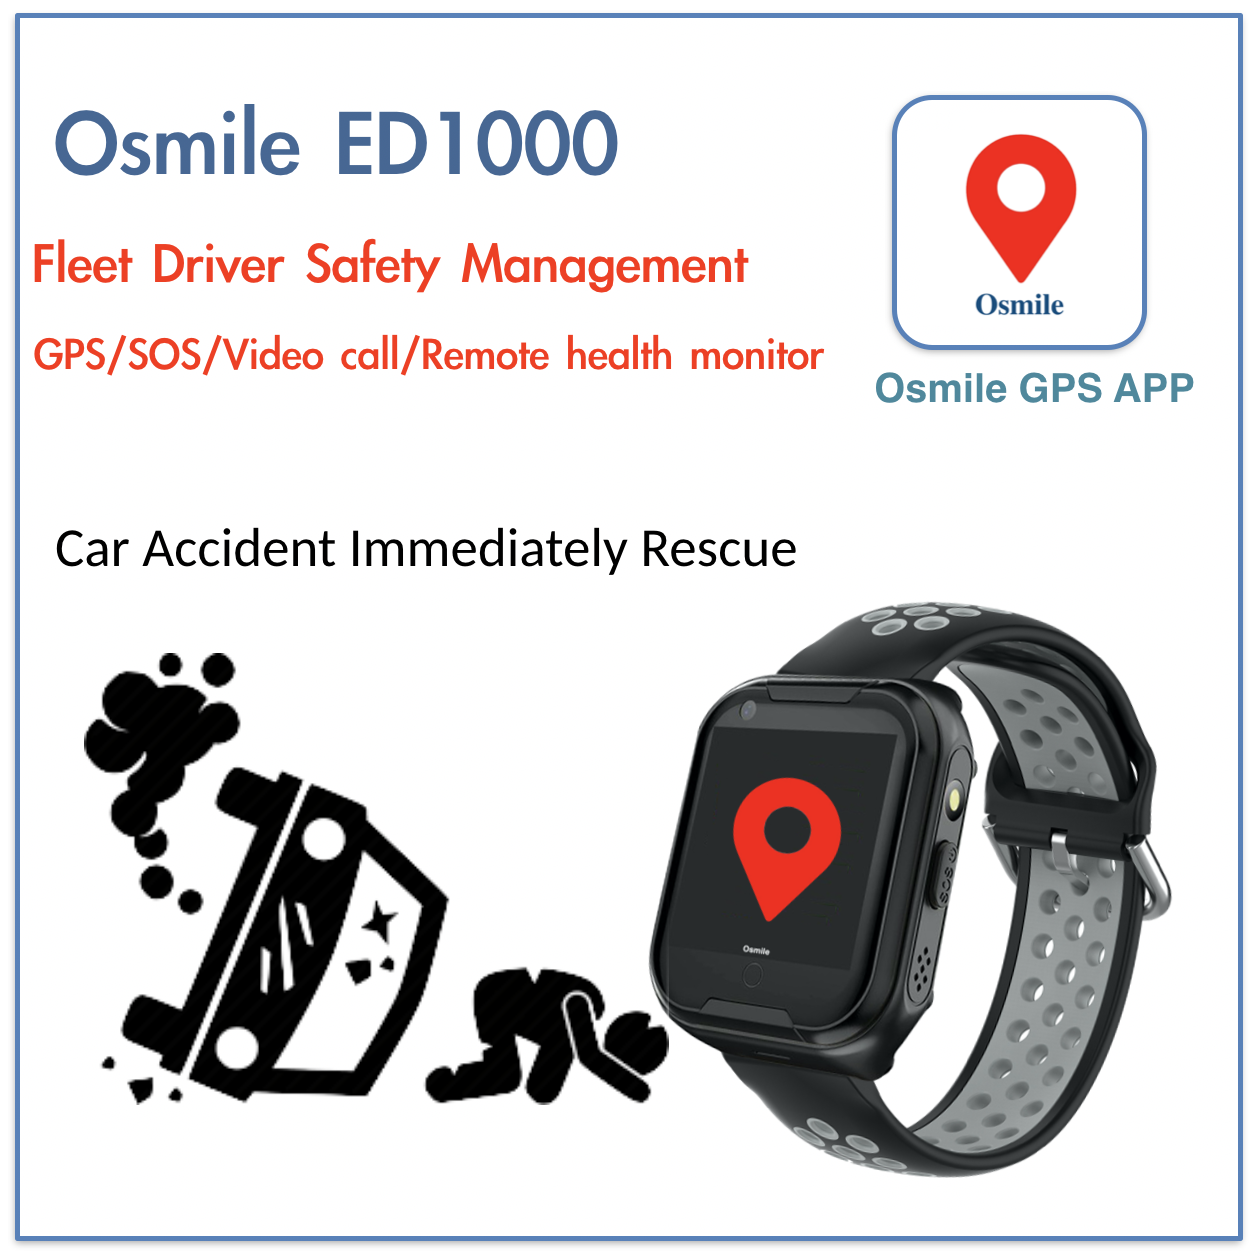 Osmile ED1000 - GPS Tracker Watch for Fleet Driver Security Management up to 50 Drive1